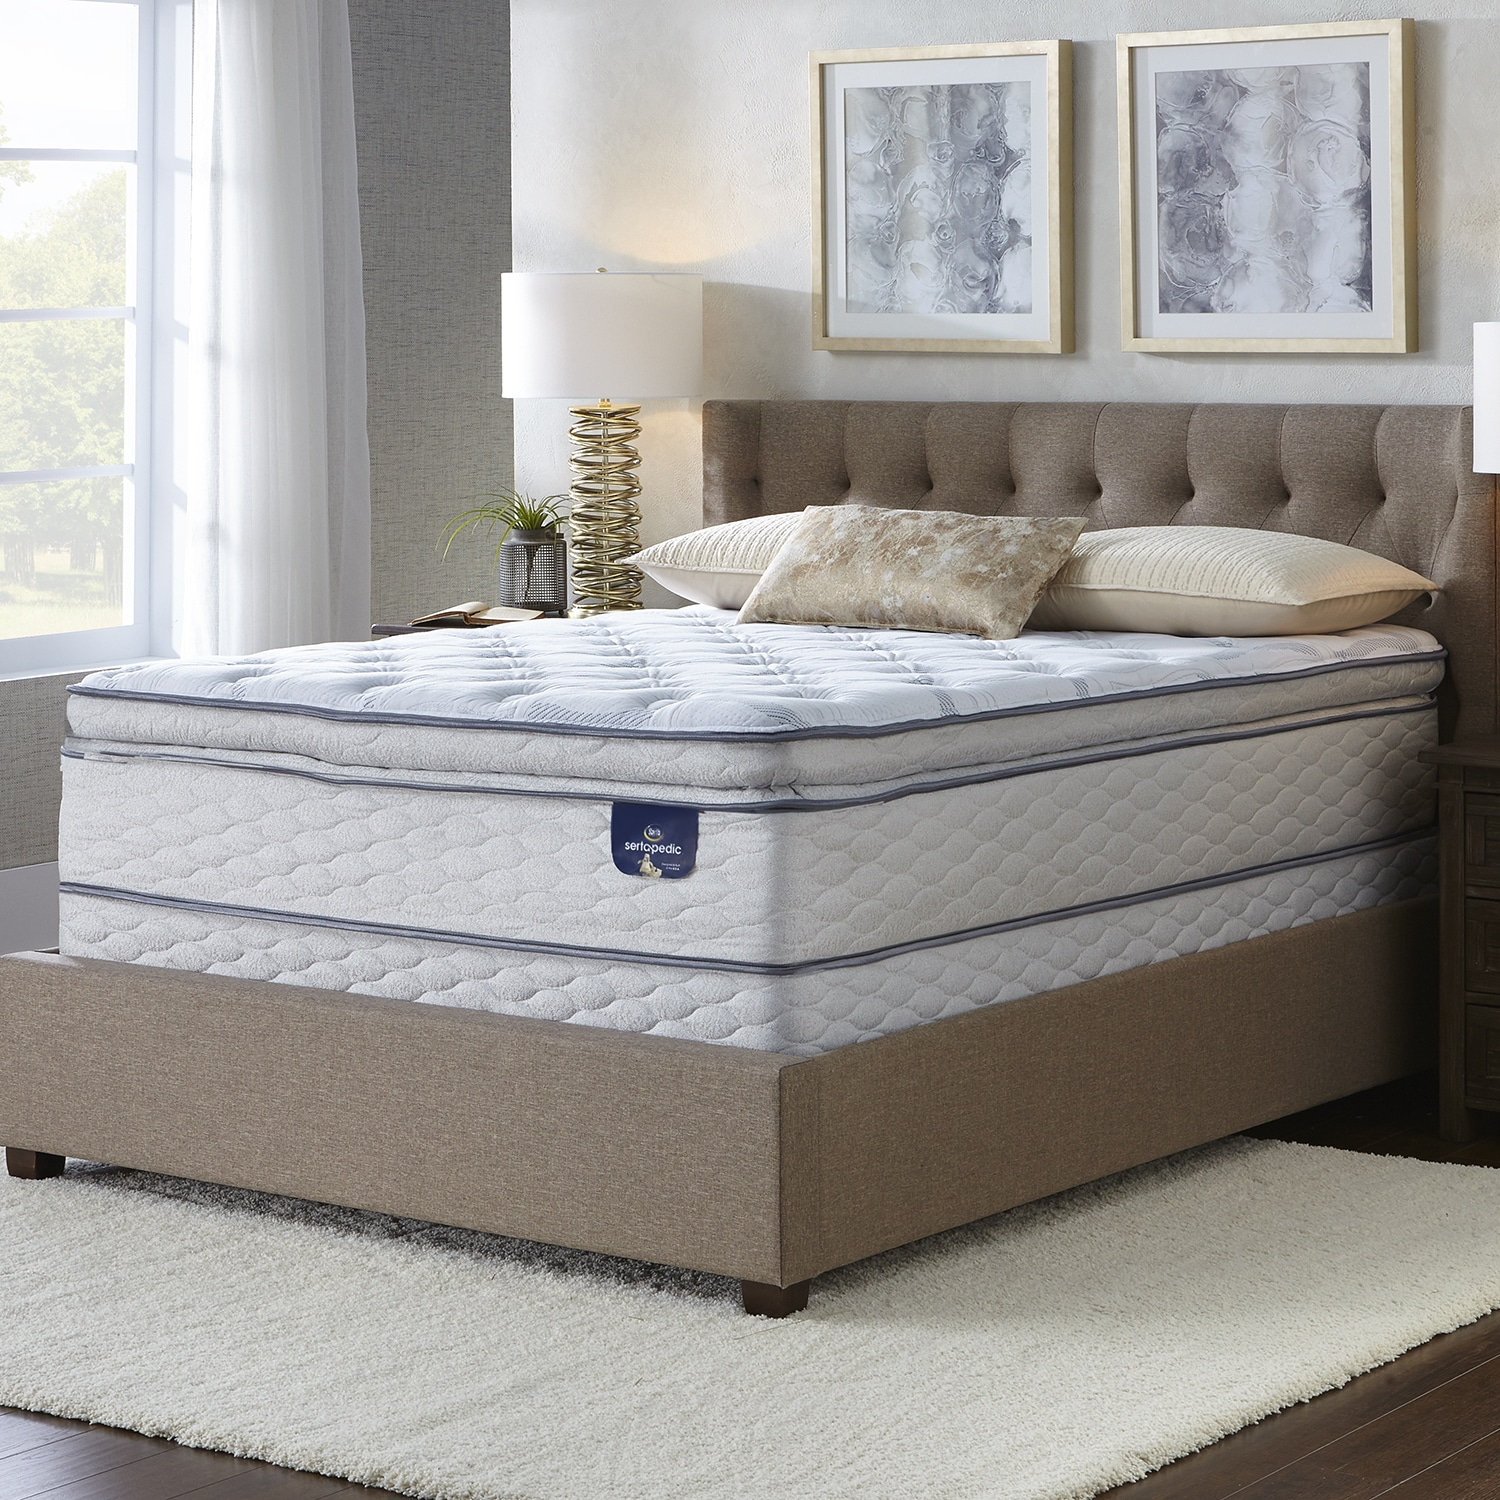 Mattress king Memory Foam Serta Westview Super Pillowtop Firm Mattress Overstock Shop Serta Westview Super Pillowtop Firm Mattress On Sale Free